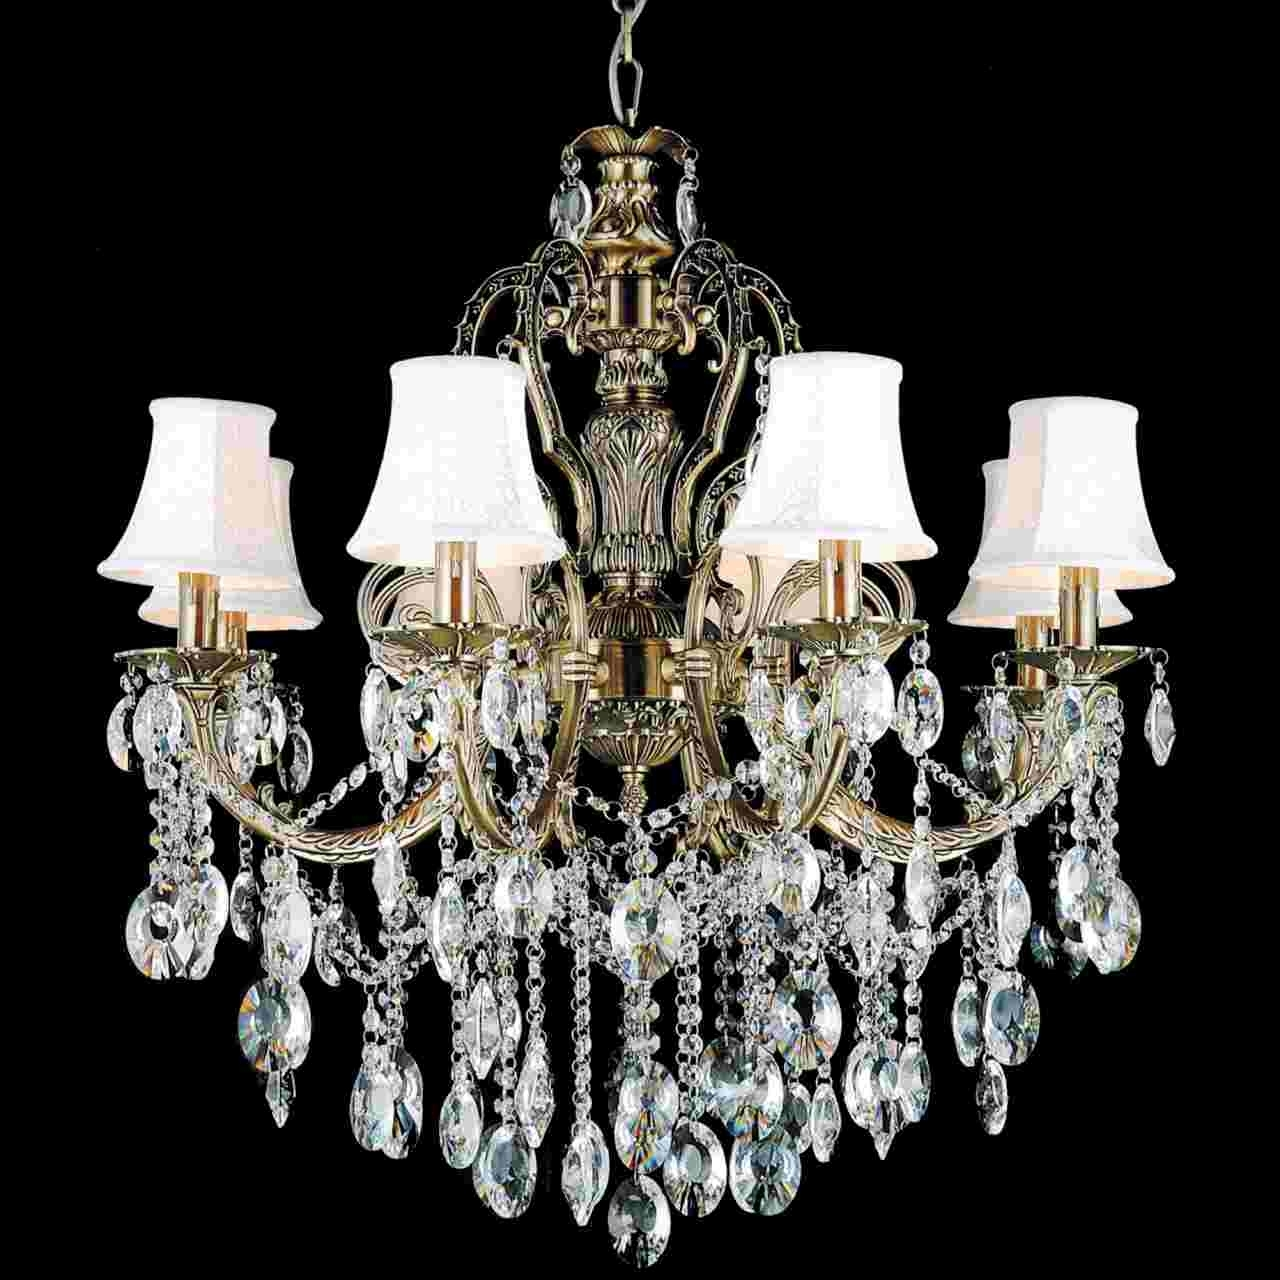 Traditional Crystal Chandeliers With Regard To Widely Used Brizzo Lighting Stores (View 8 of 15)